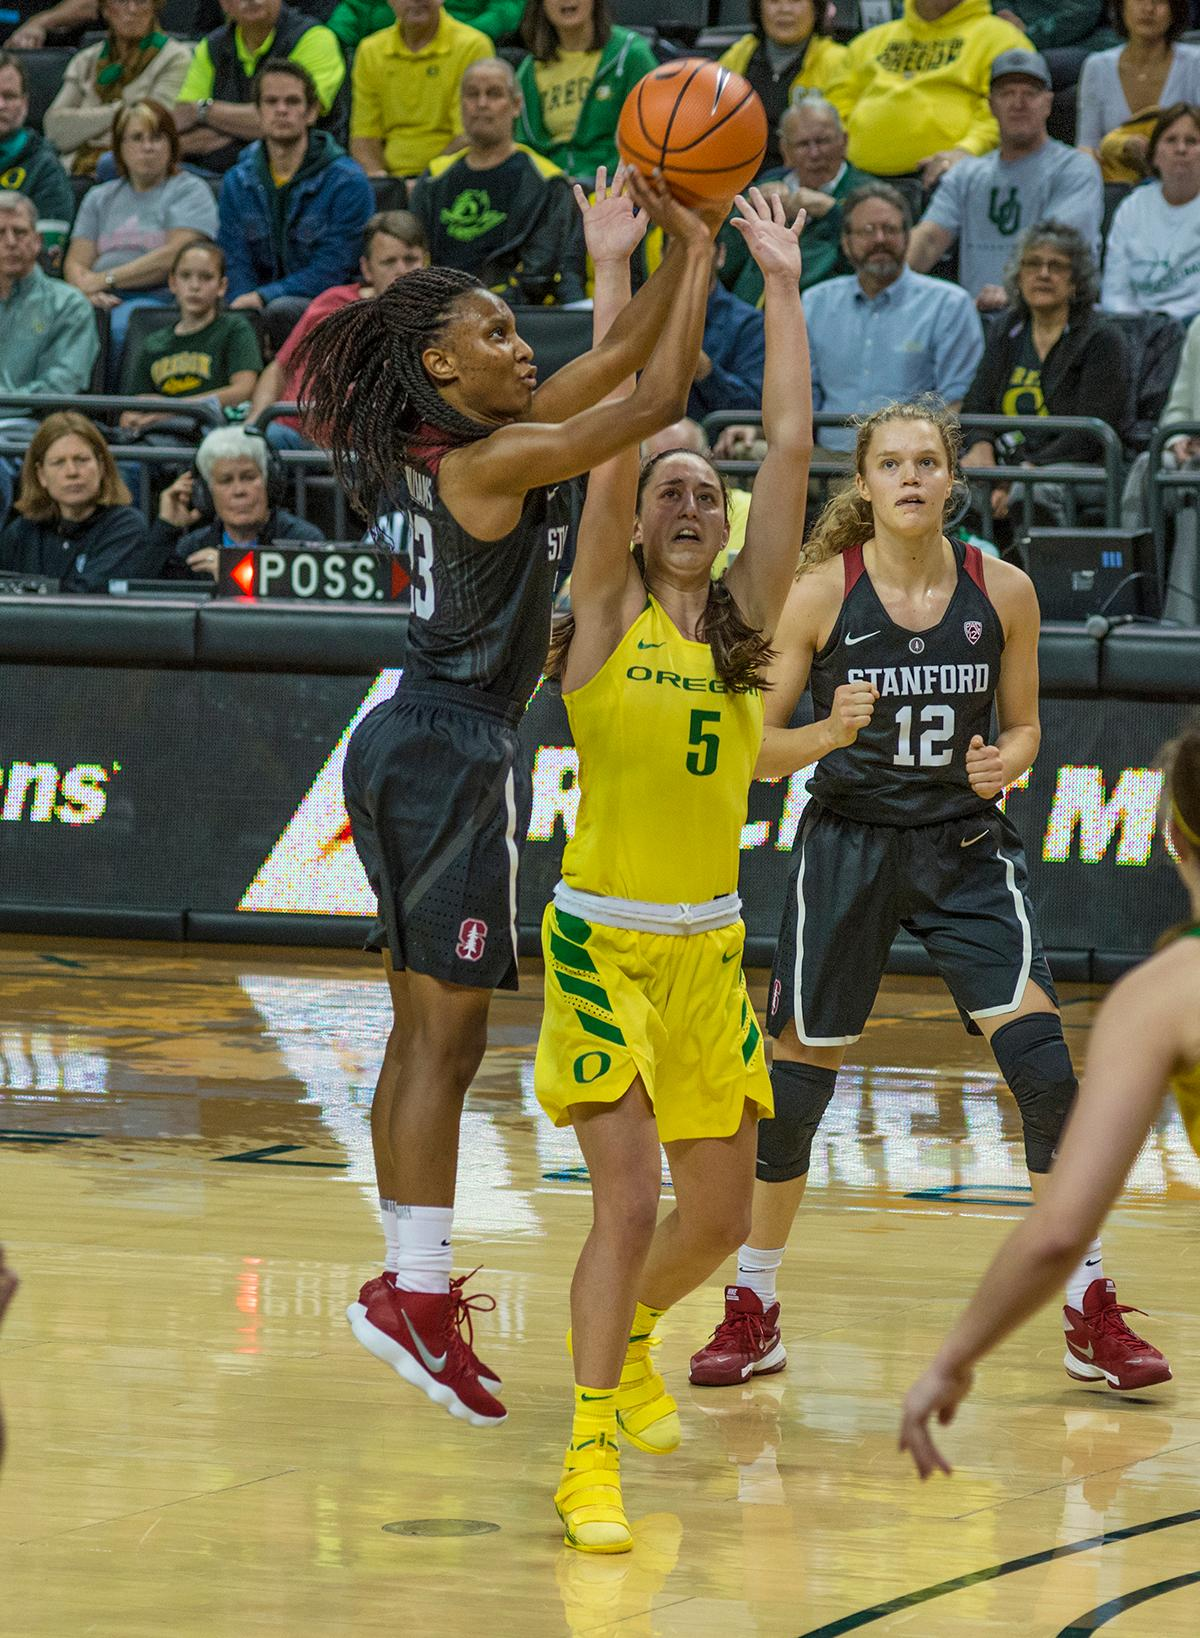 Stanford Cardinal Kiana Williams (#23) gets past Oregon Ducks Maite Cazorla (#5) for two points. The Stanford Cardinal defeated the Oregon Ducks 78-65 on Sunday afternoon at Matthew Knight Arena. Stanford is now 10-2 in conference play and with this loss the Ducks drop to 10-2. Leading the Stanford Cardinal was Brittany McPhee with 33 points, Alanna Smith with 14 points, and Kiana Williams with 14 points. For the Ducks Sabrina Ionescu led with 22 points, Ruthy Hebard added 16 points, and Satou Sabally put in 14 points. Photo by Dan Morrison, Oregon News Lab